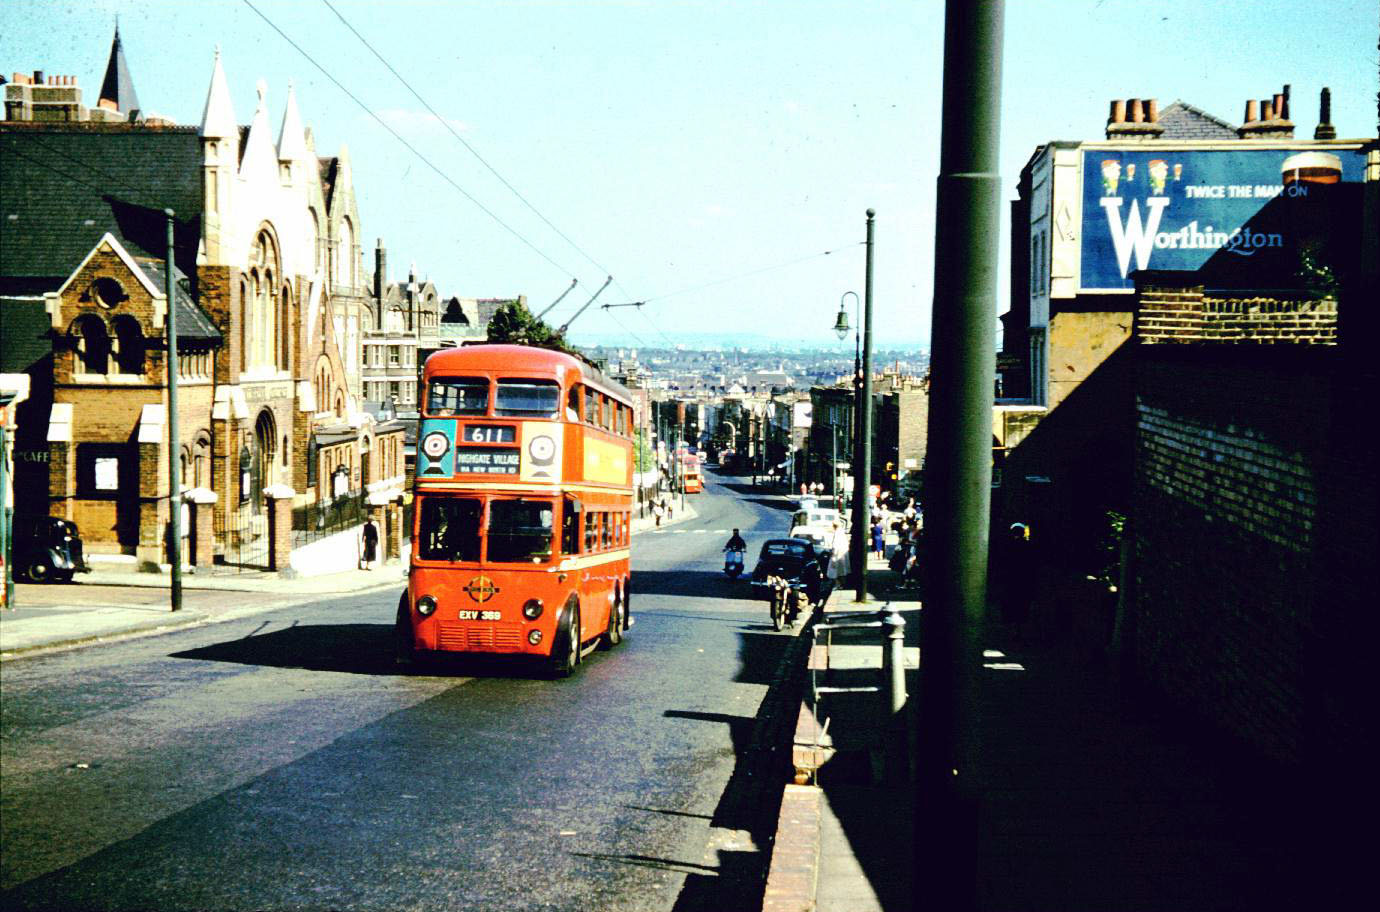 david bradley online - london trolleybus on route 611 climbing